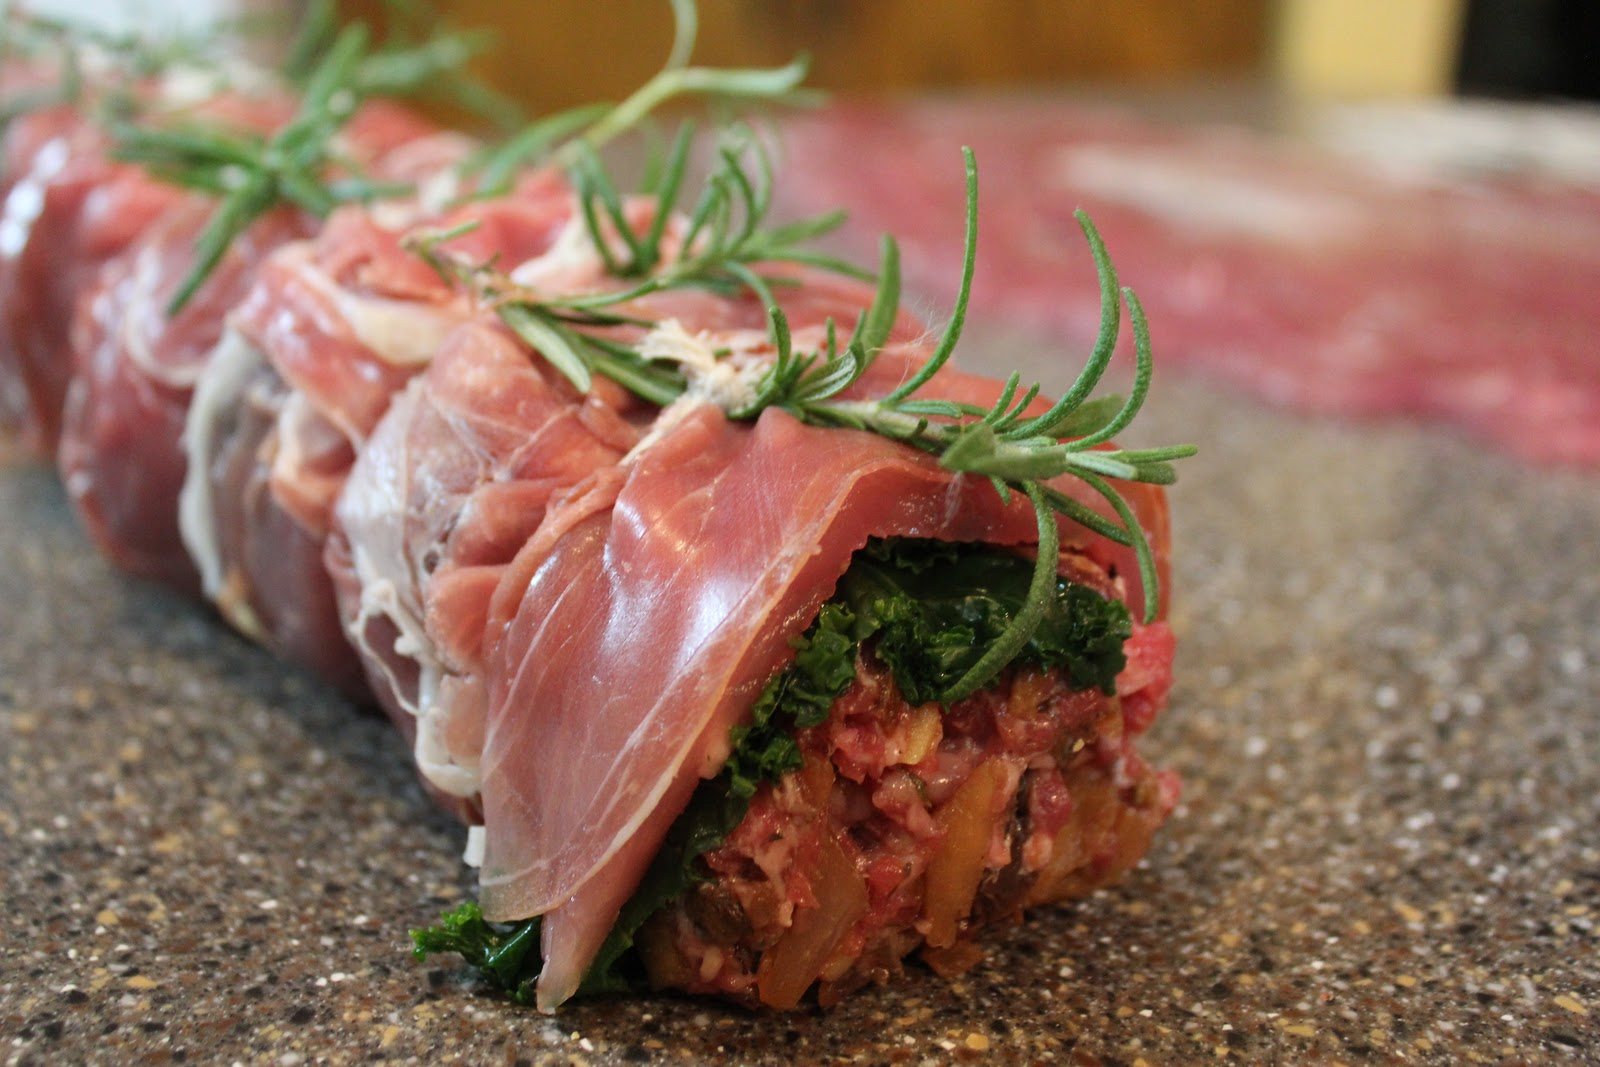 Thyme In Our Kitchen: Prosciutto-Wrapped Pork Loin with Roasted Apples